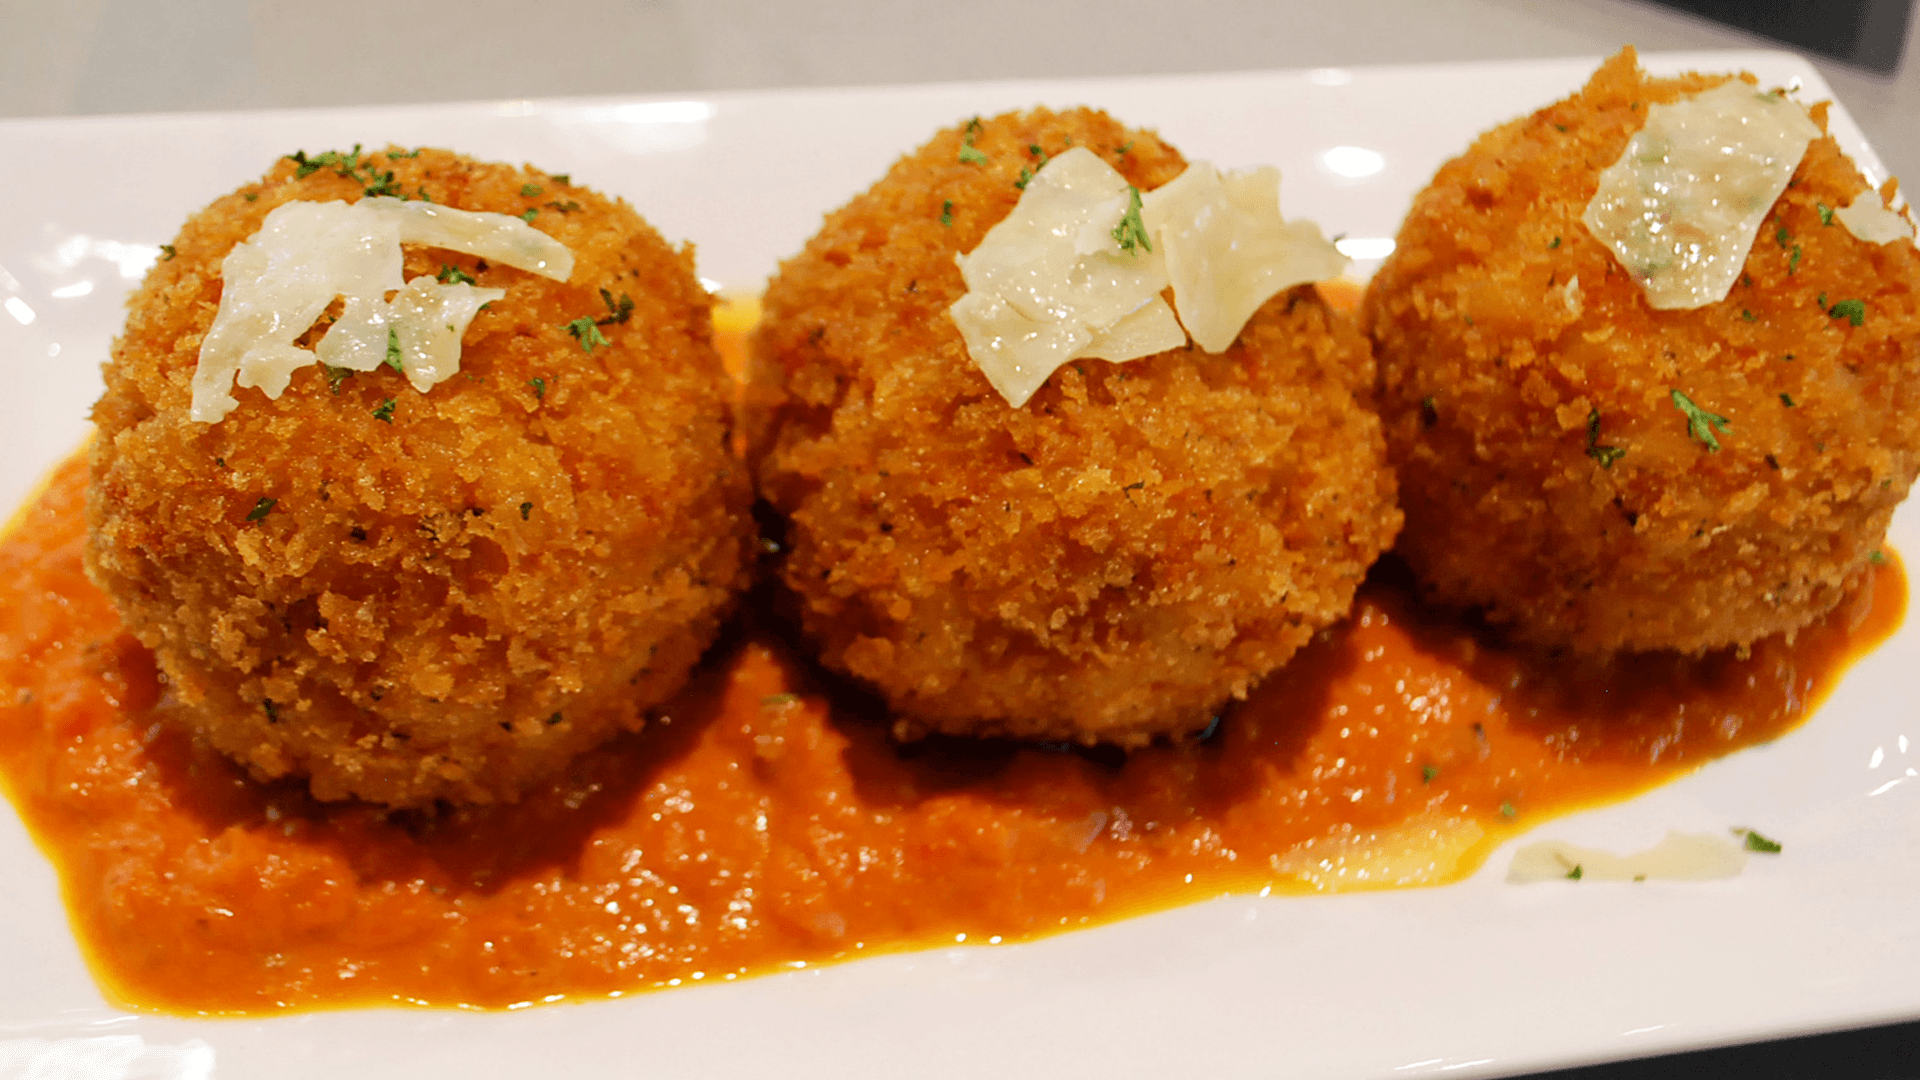 GameTime_Fried_Mac_N_Cheese_Balls_Miami_Tampa_Fort_Myers